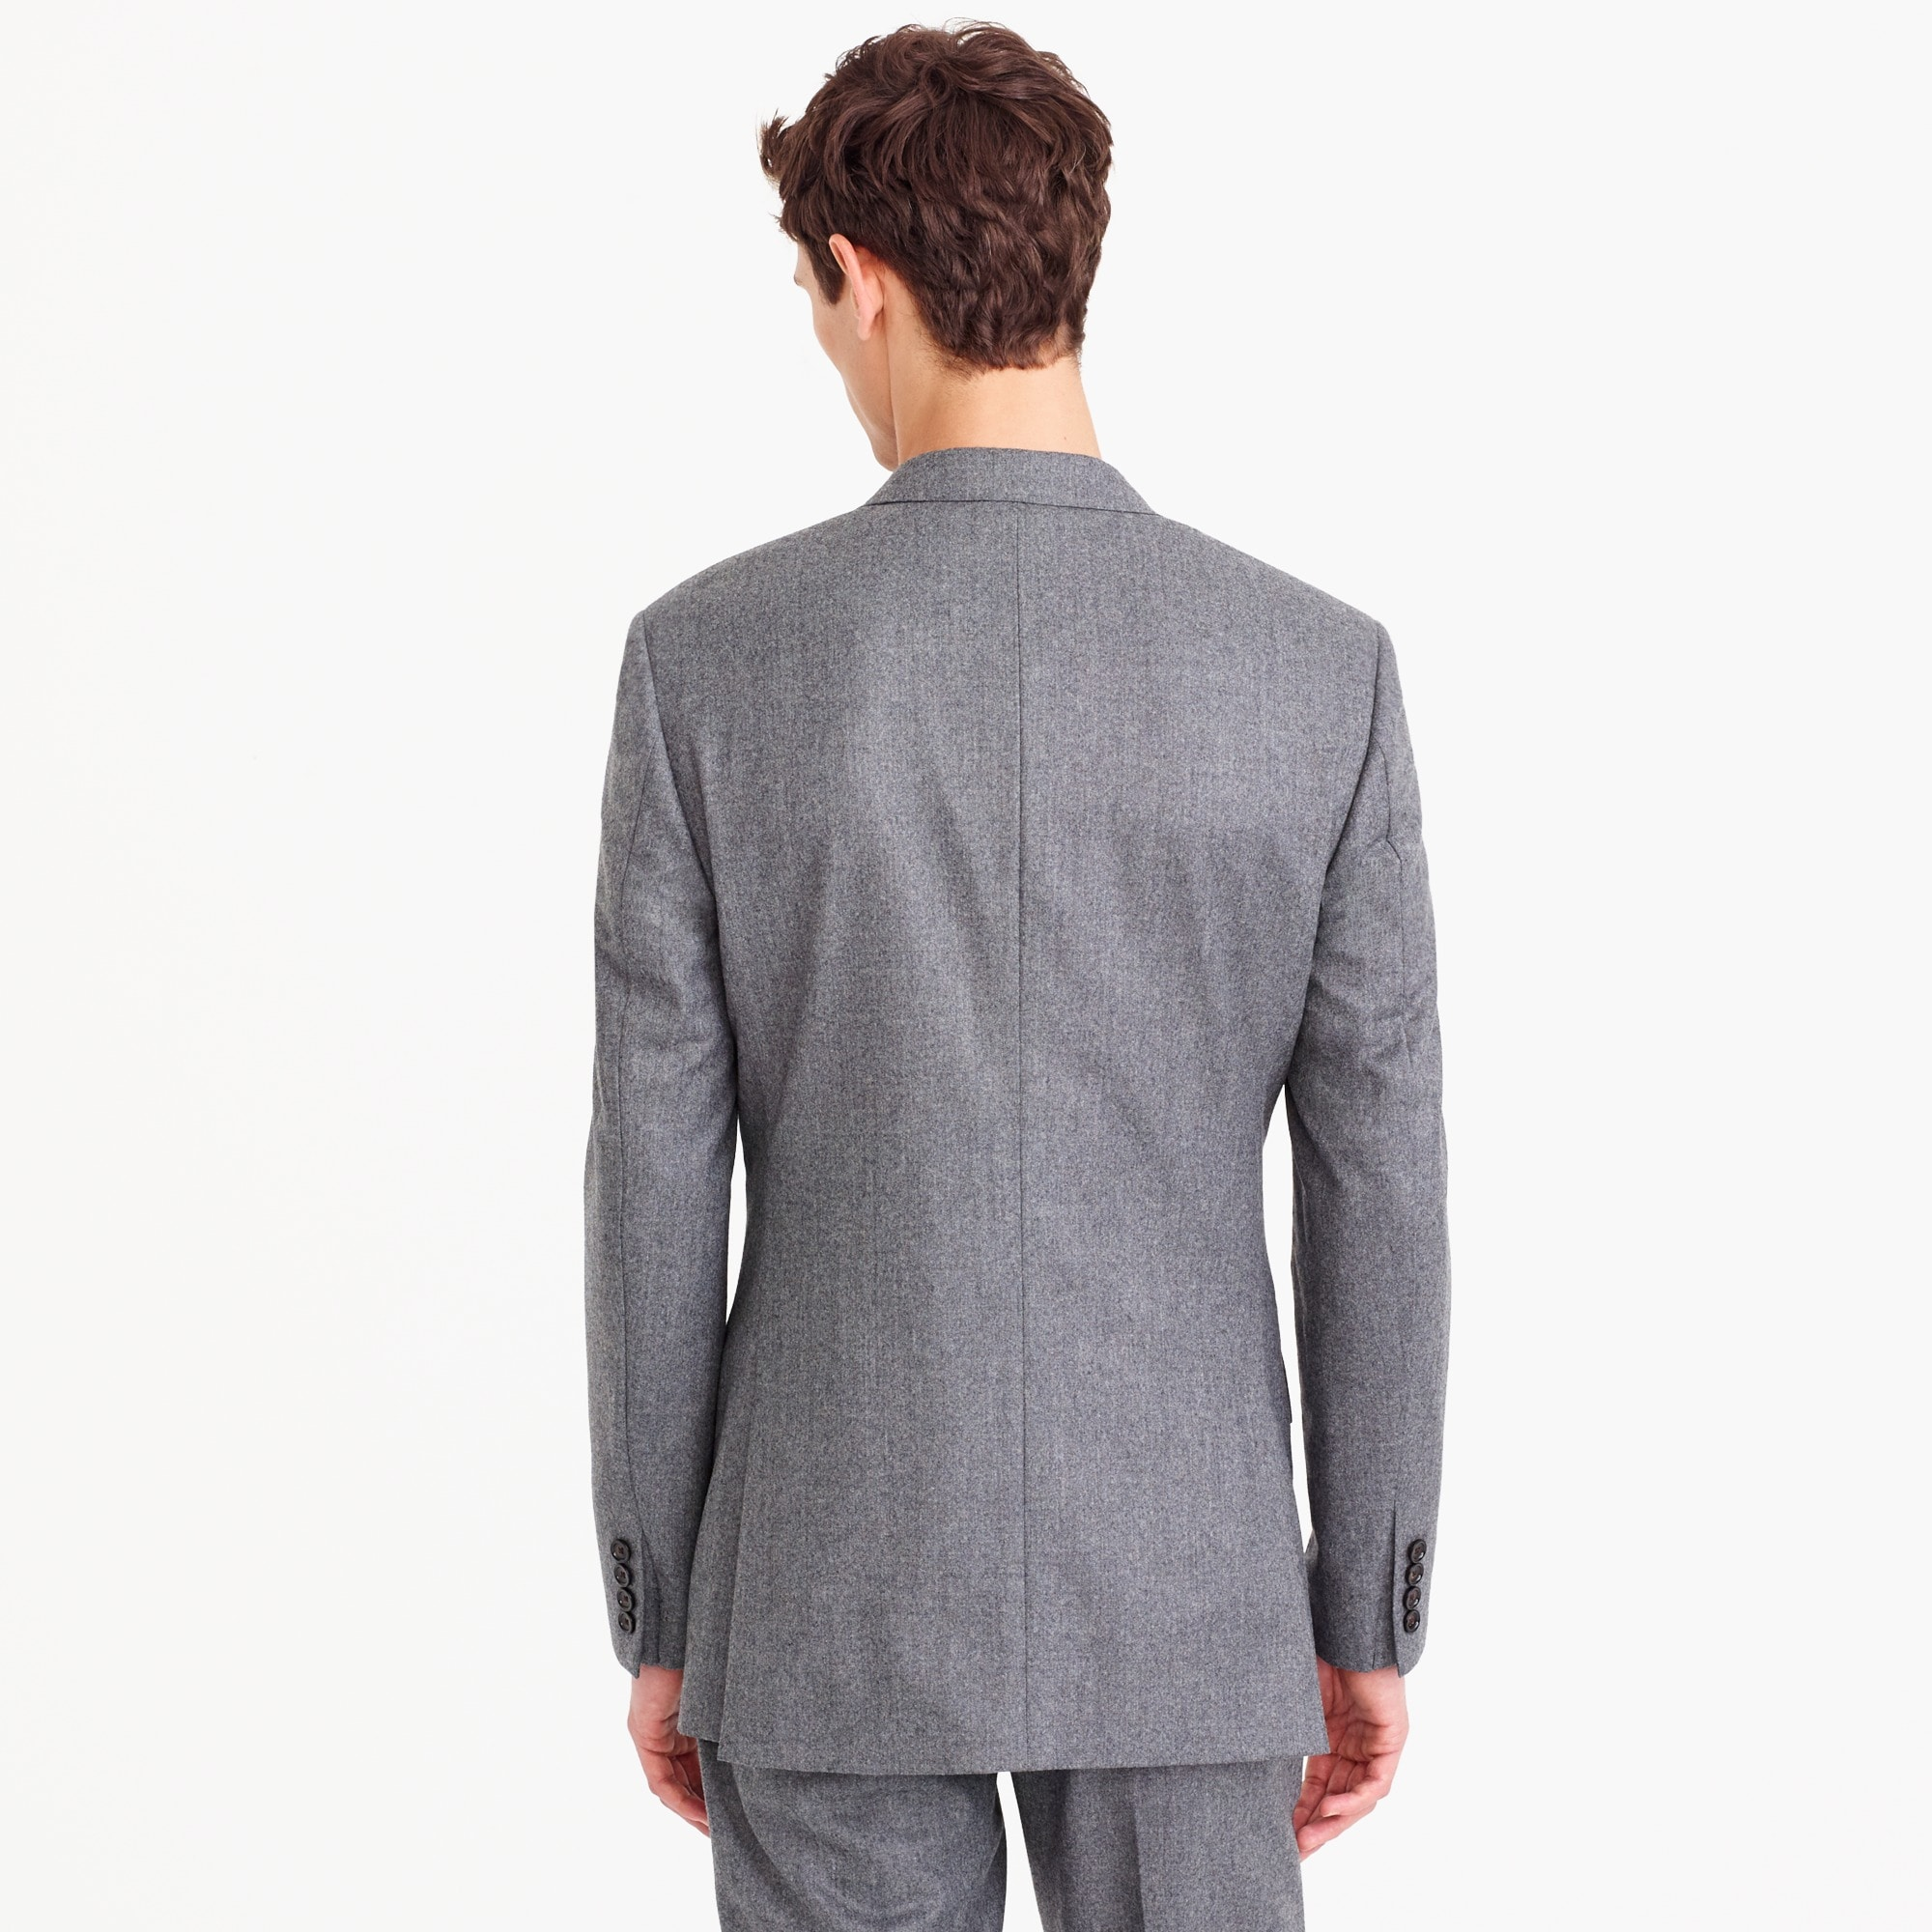 Ludlow Slim-fit wide-lapel suit jacket in Italian wool flannel